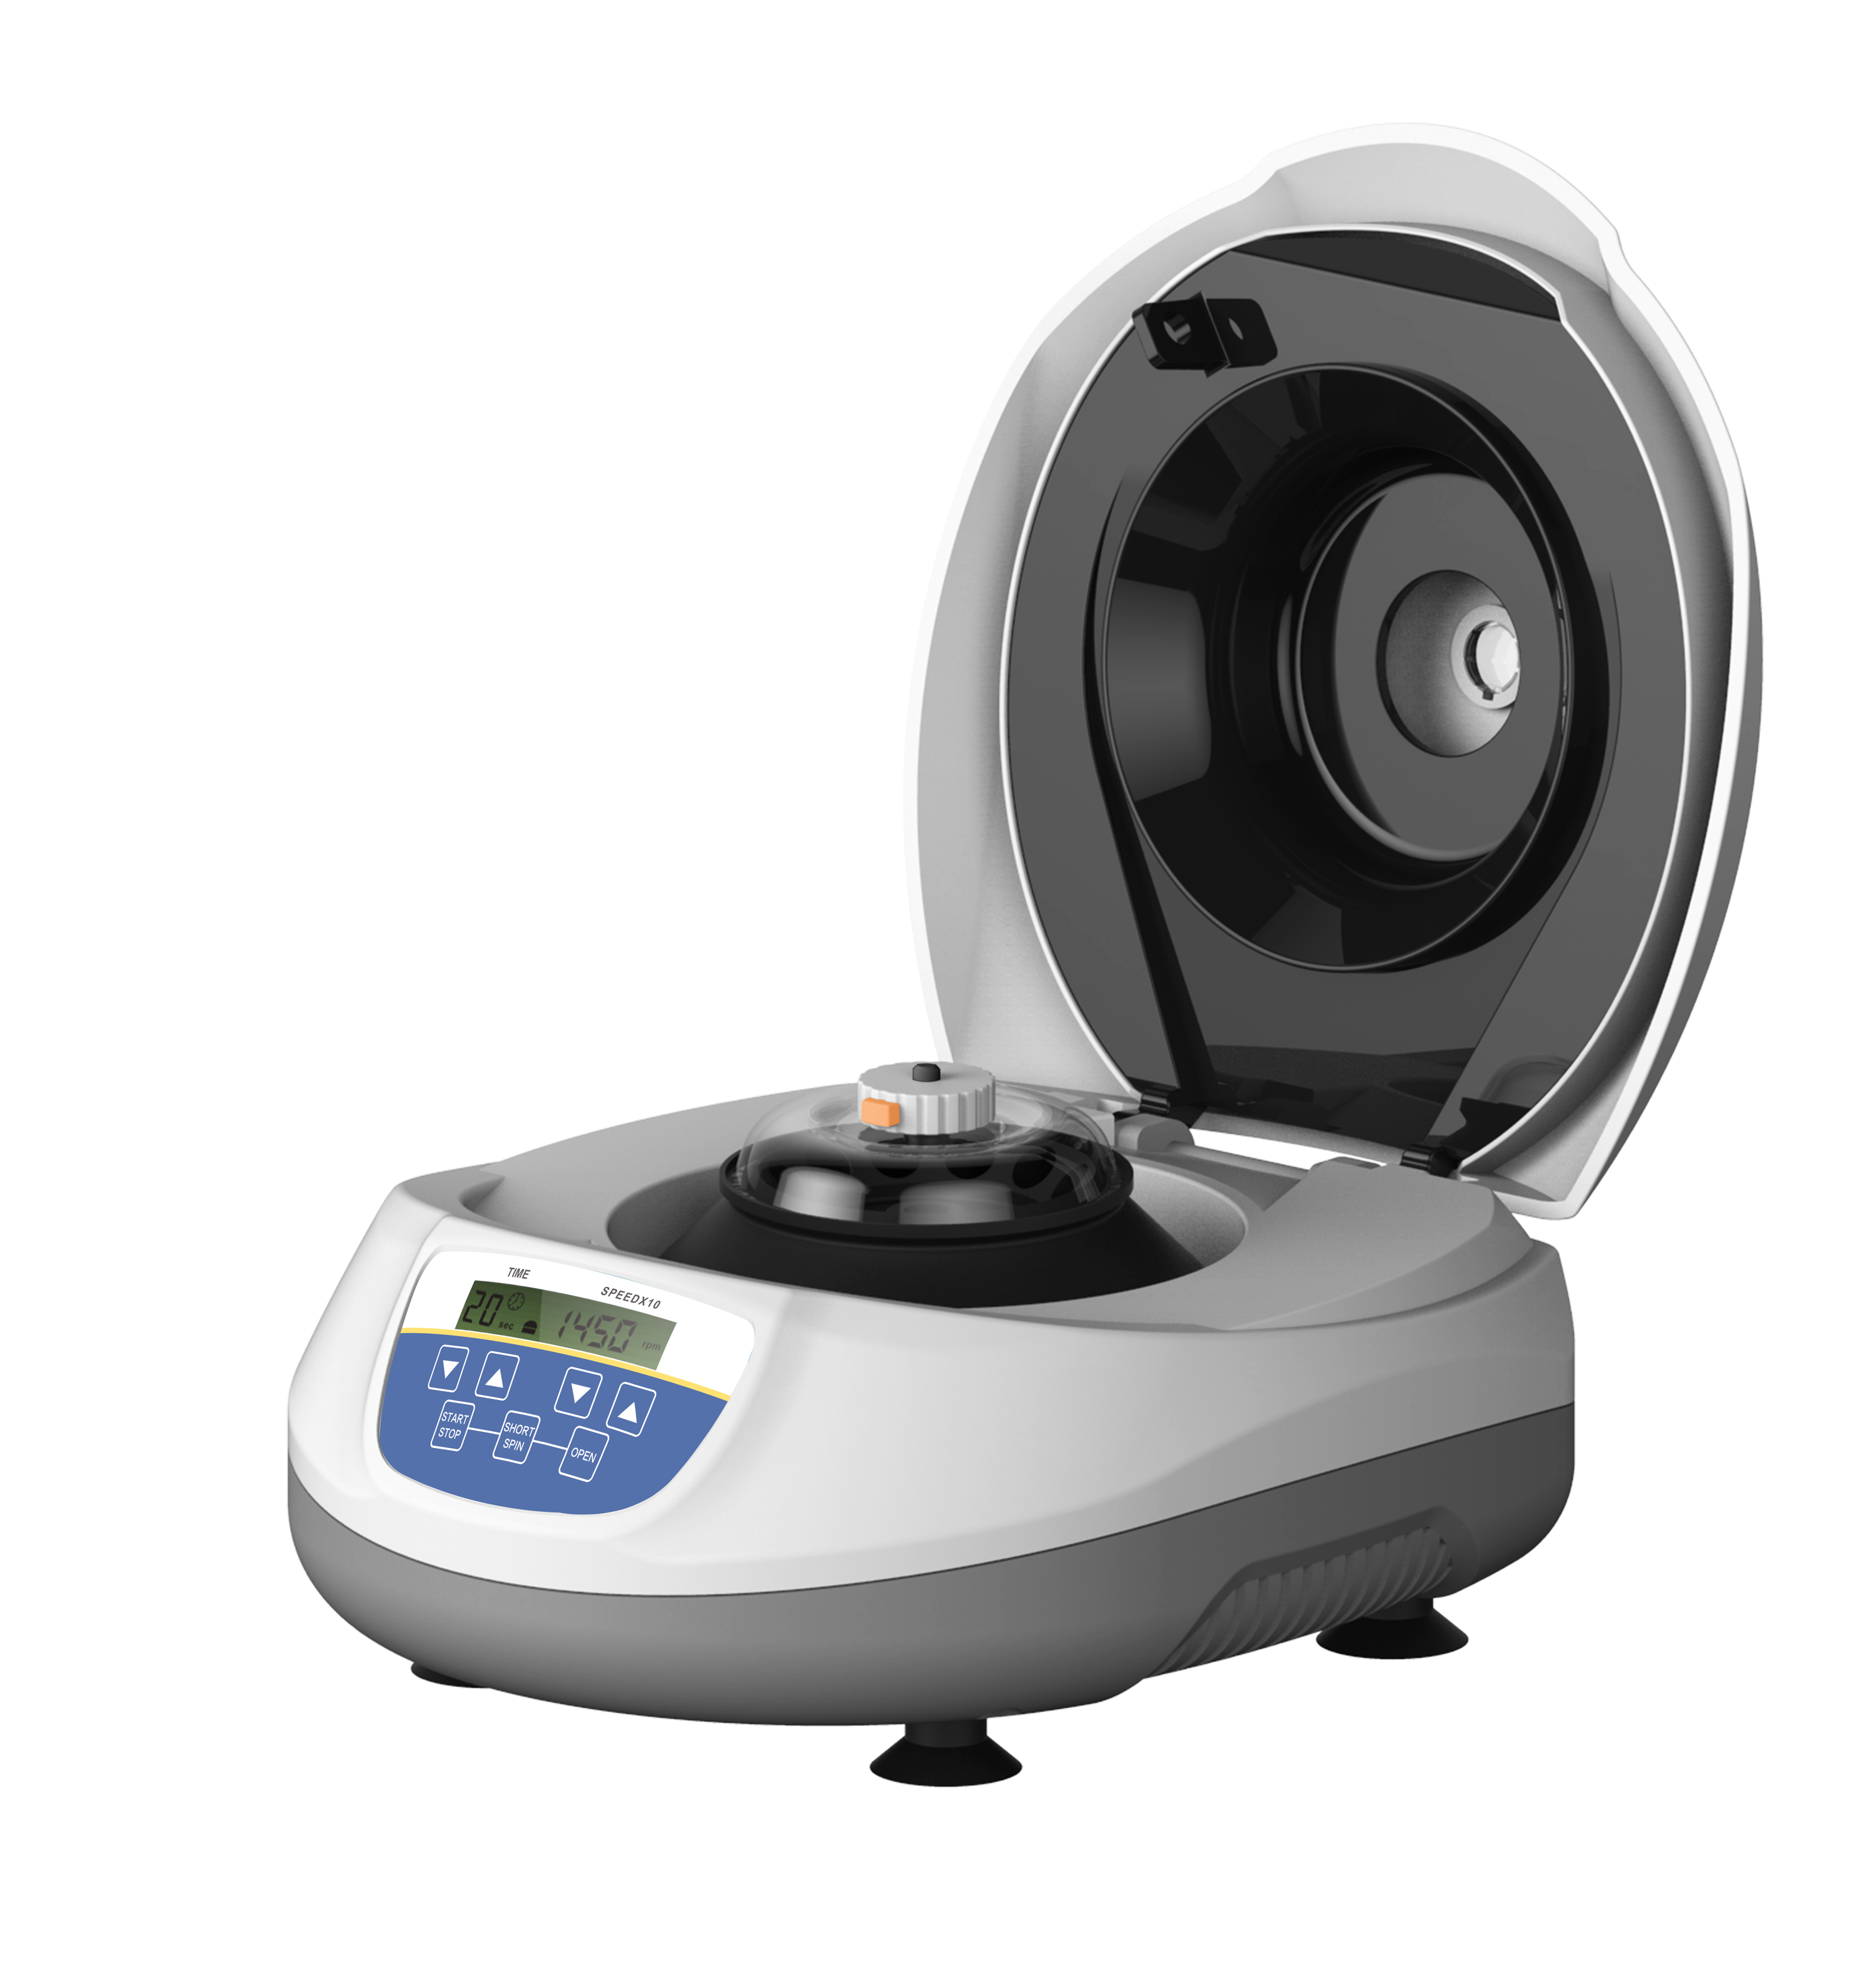 Tisch MicroSpin and MicroPlus Centrifuges